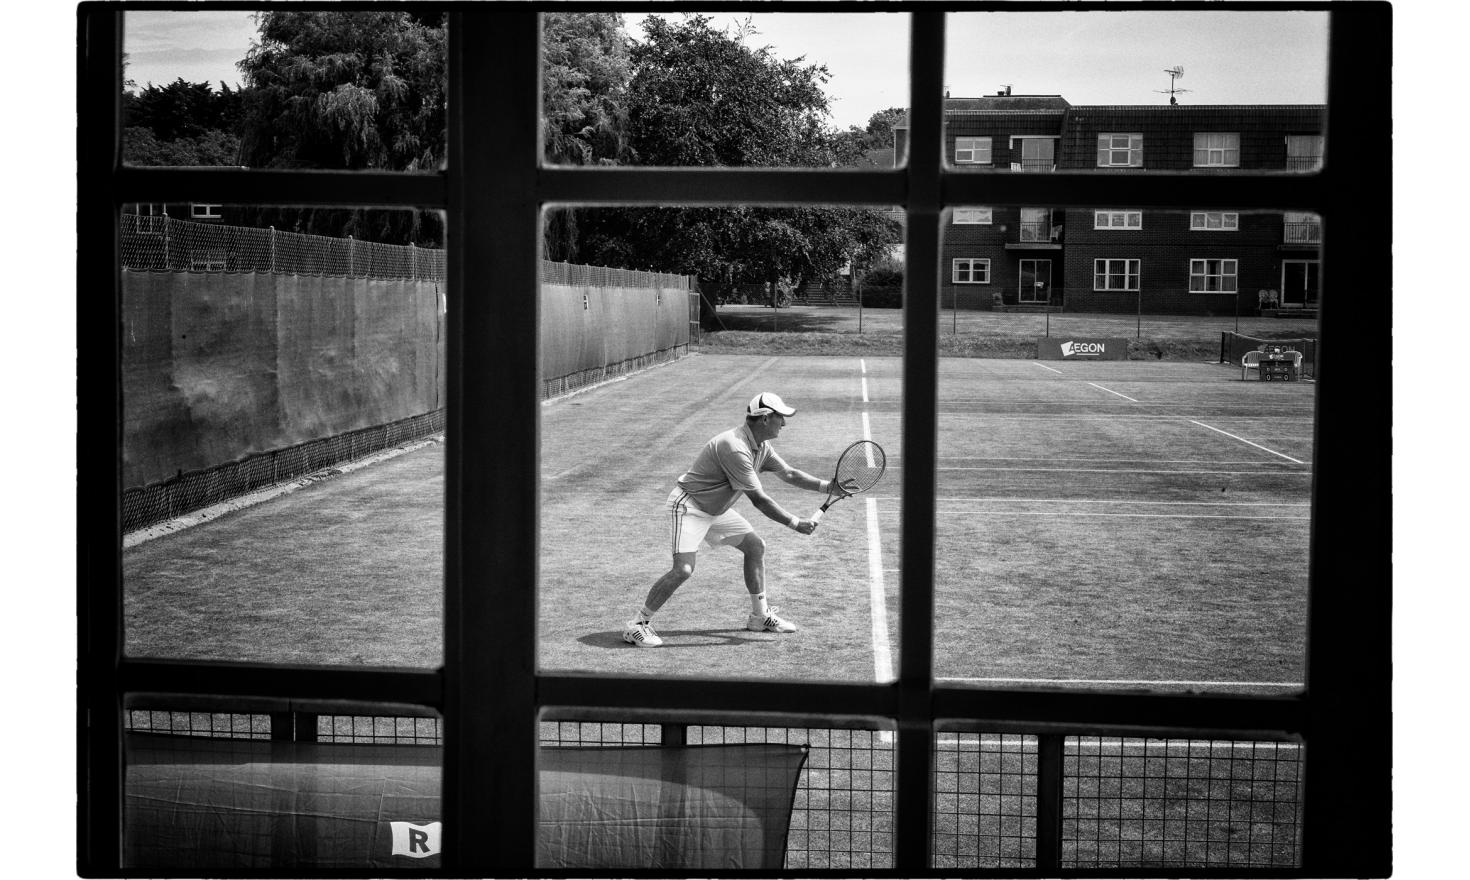 """Senoir final, tennis tounament in frinton, a very fancy toxn near Clacton. The Trending district has voted at 65% for the""""leave""""the EU. Frinton, England. July 2016"""